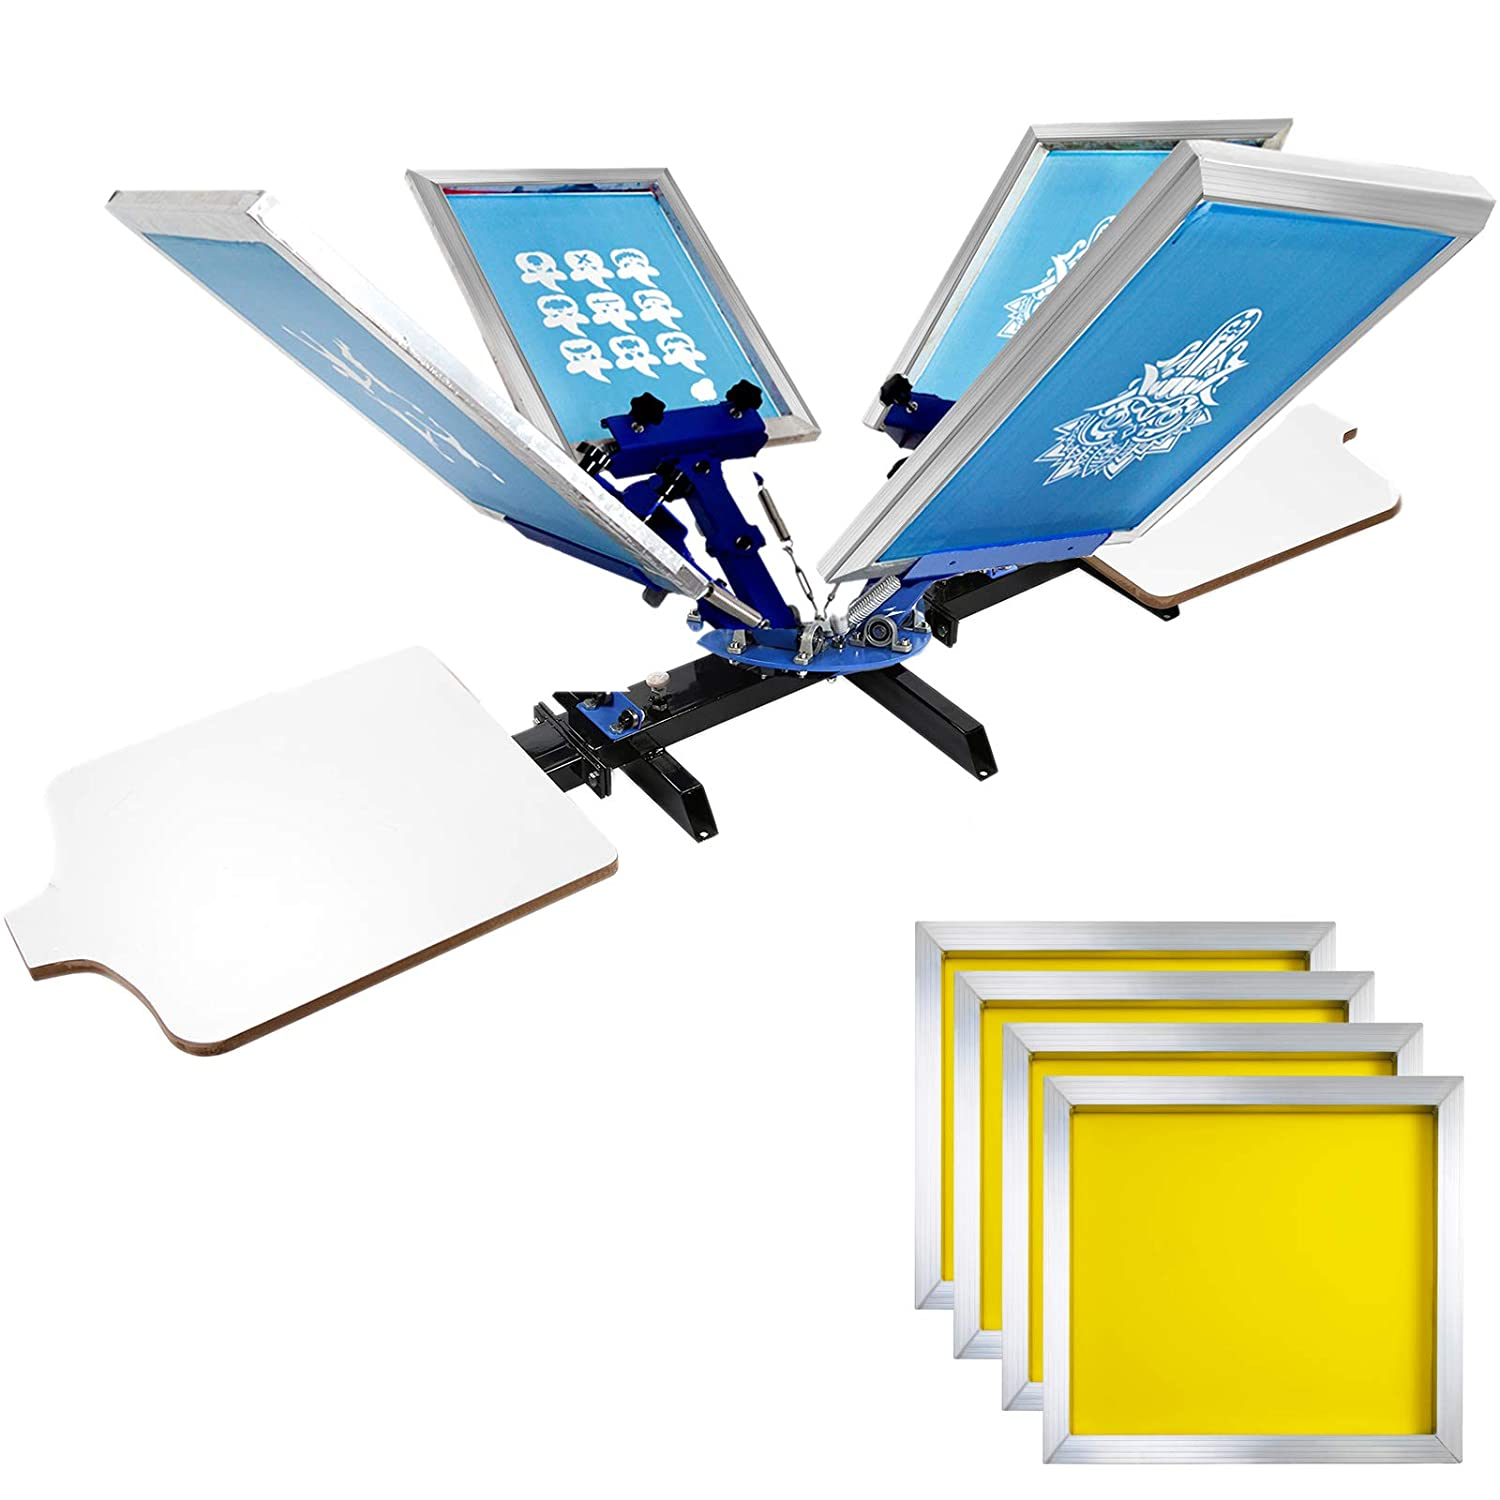 VEVOR Screen Printing 4 Color 2 Station Screen Printing Machine and 6 Pieces 10x14 Inch Aluminum Screen Frame with White 156 Count Mesh